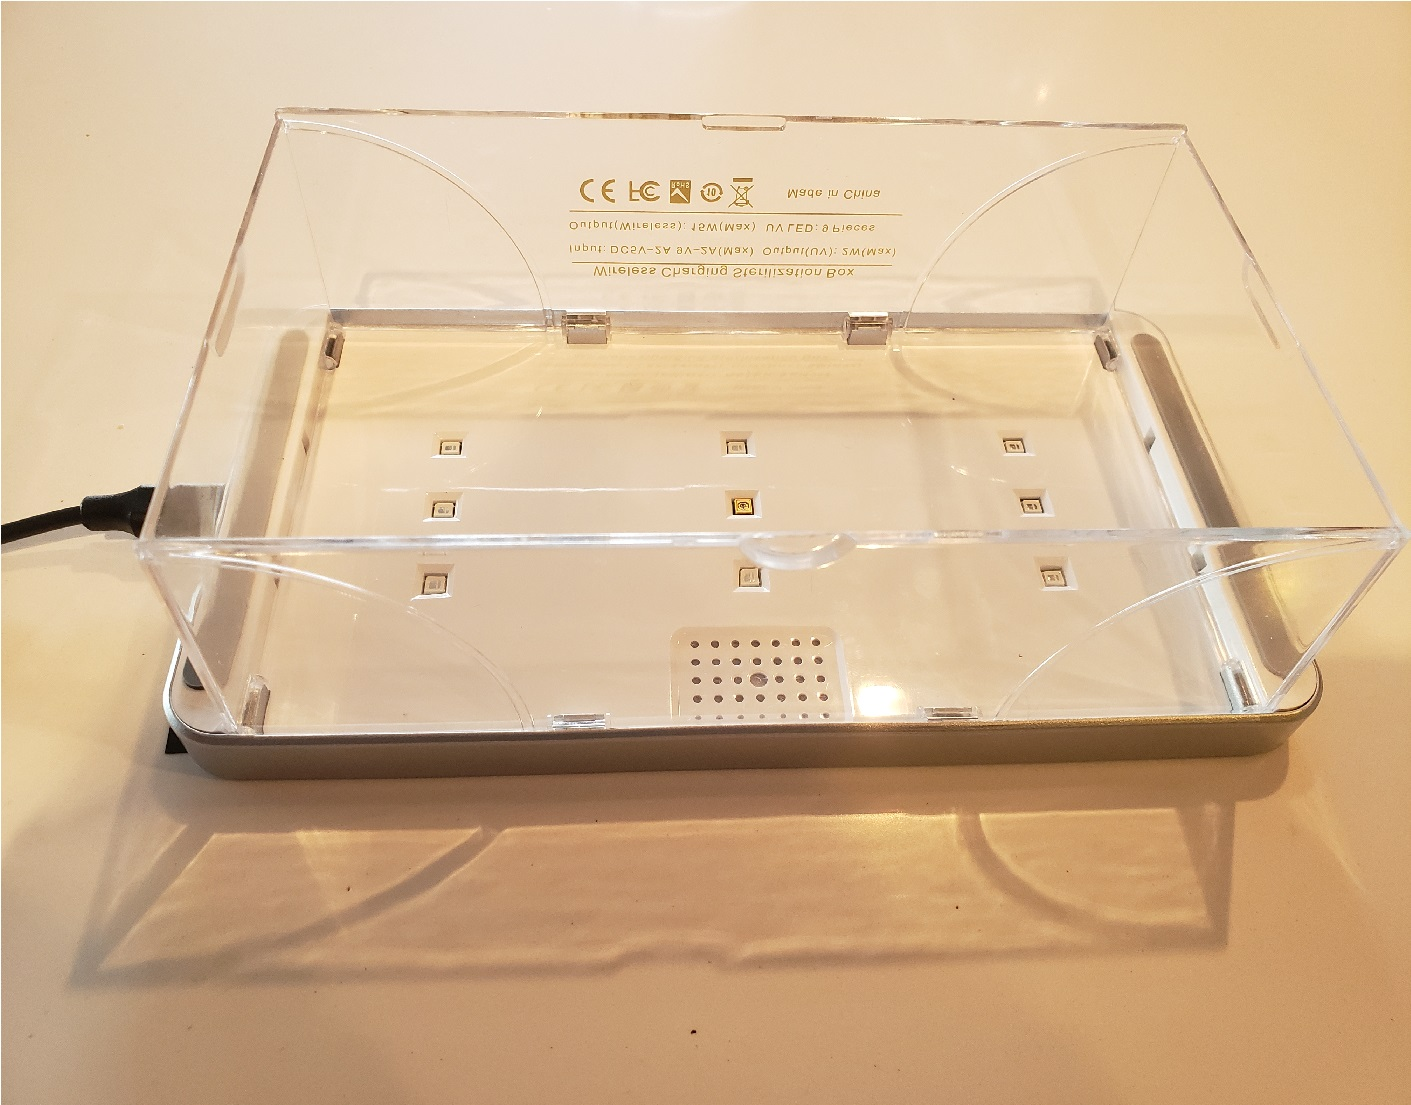 image of the underside of the UV sterilizer box with the box sides expanded